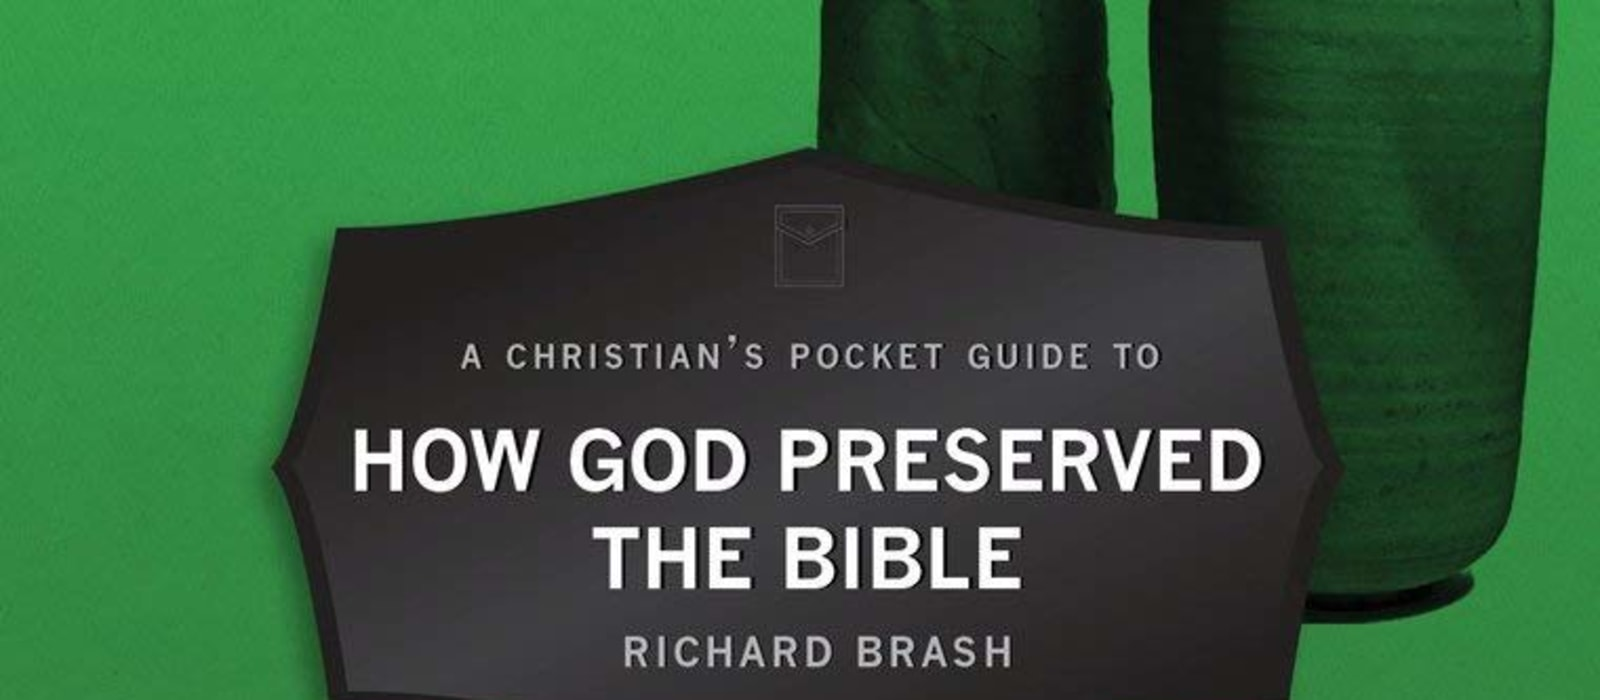 New Publication - Richard Brash